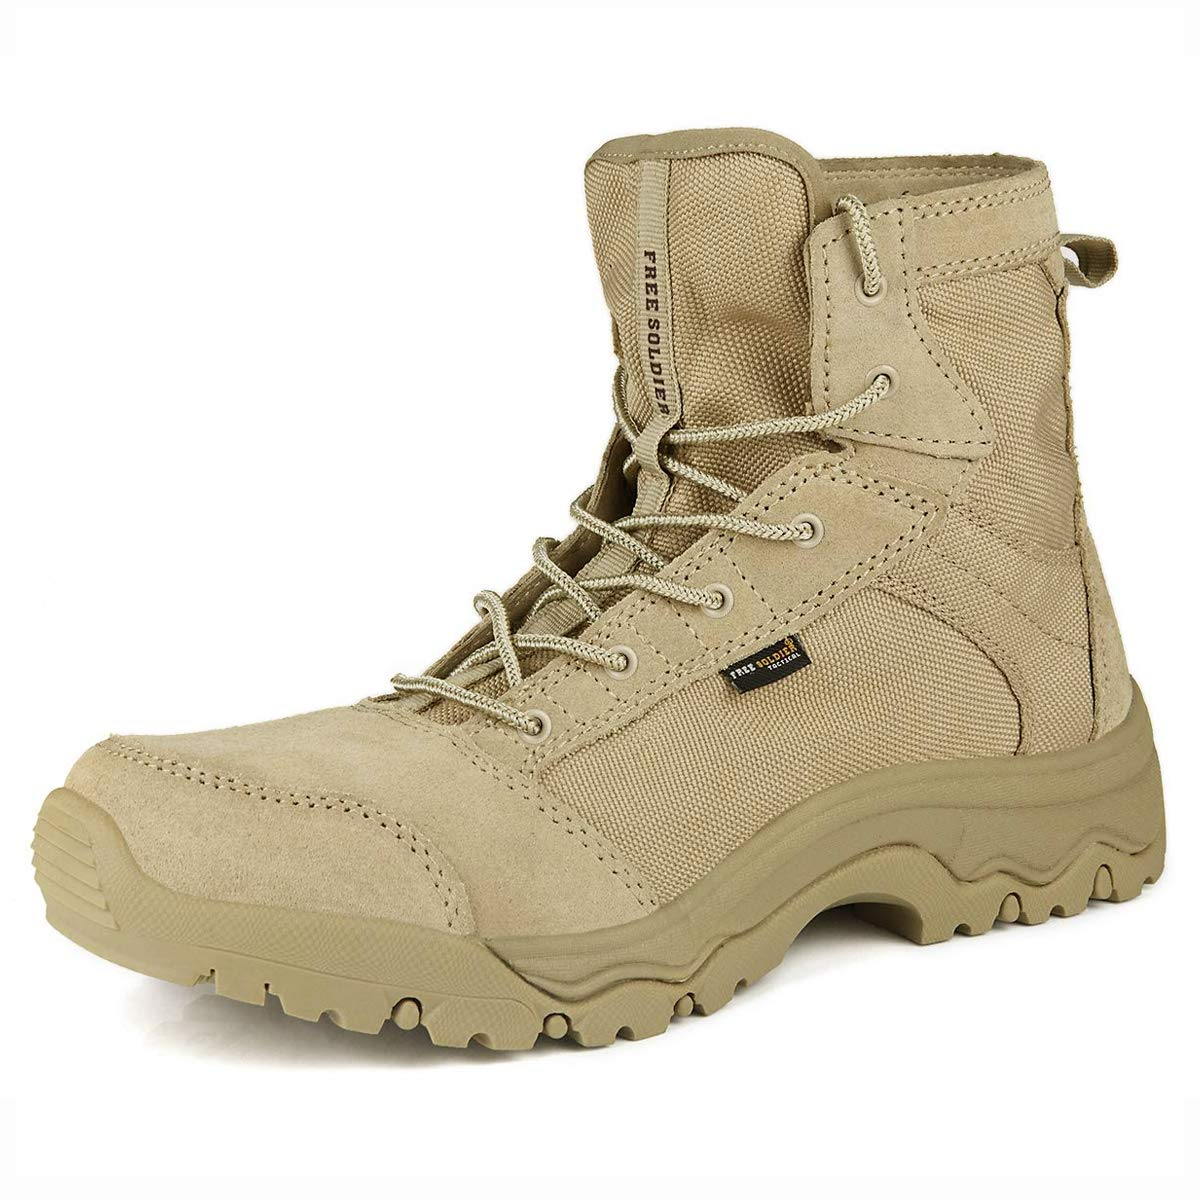 FREE SOLDIER Men's Work Boots 6 inch Lightweight Breathable Military Tactical Desert Boots for Hiking(Sand 11 US) by FREE SOLDIER